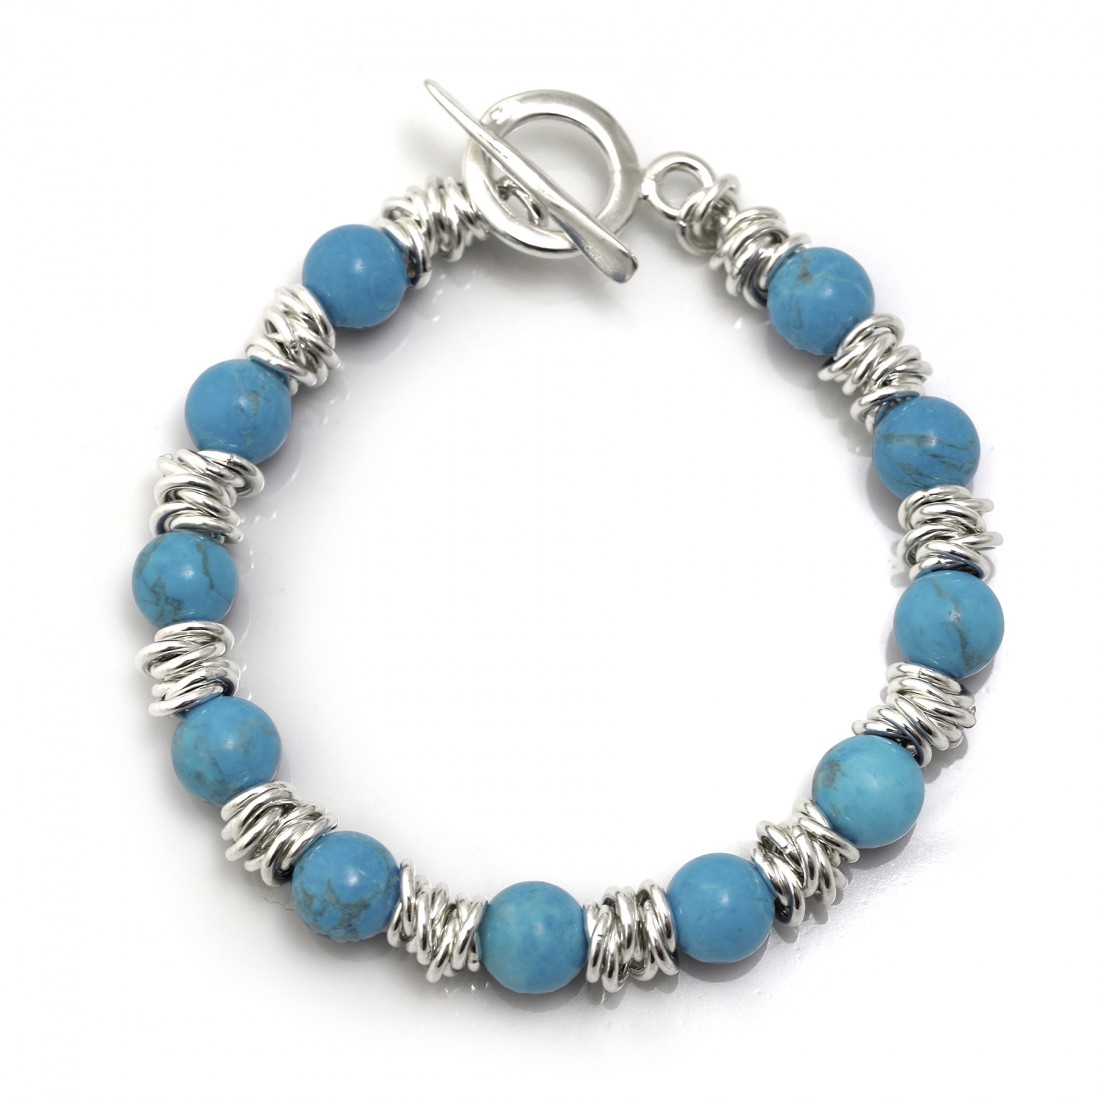 Classic Sterling Silver Multi-Links Bracelet With Turquoise